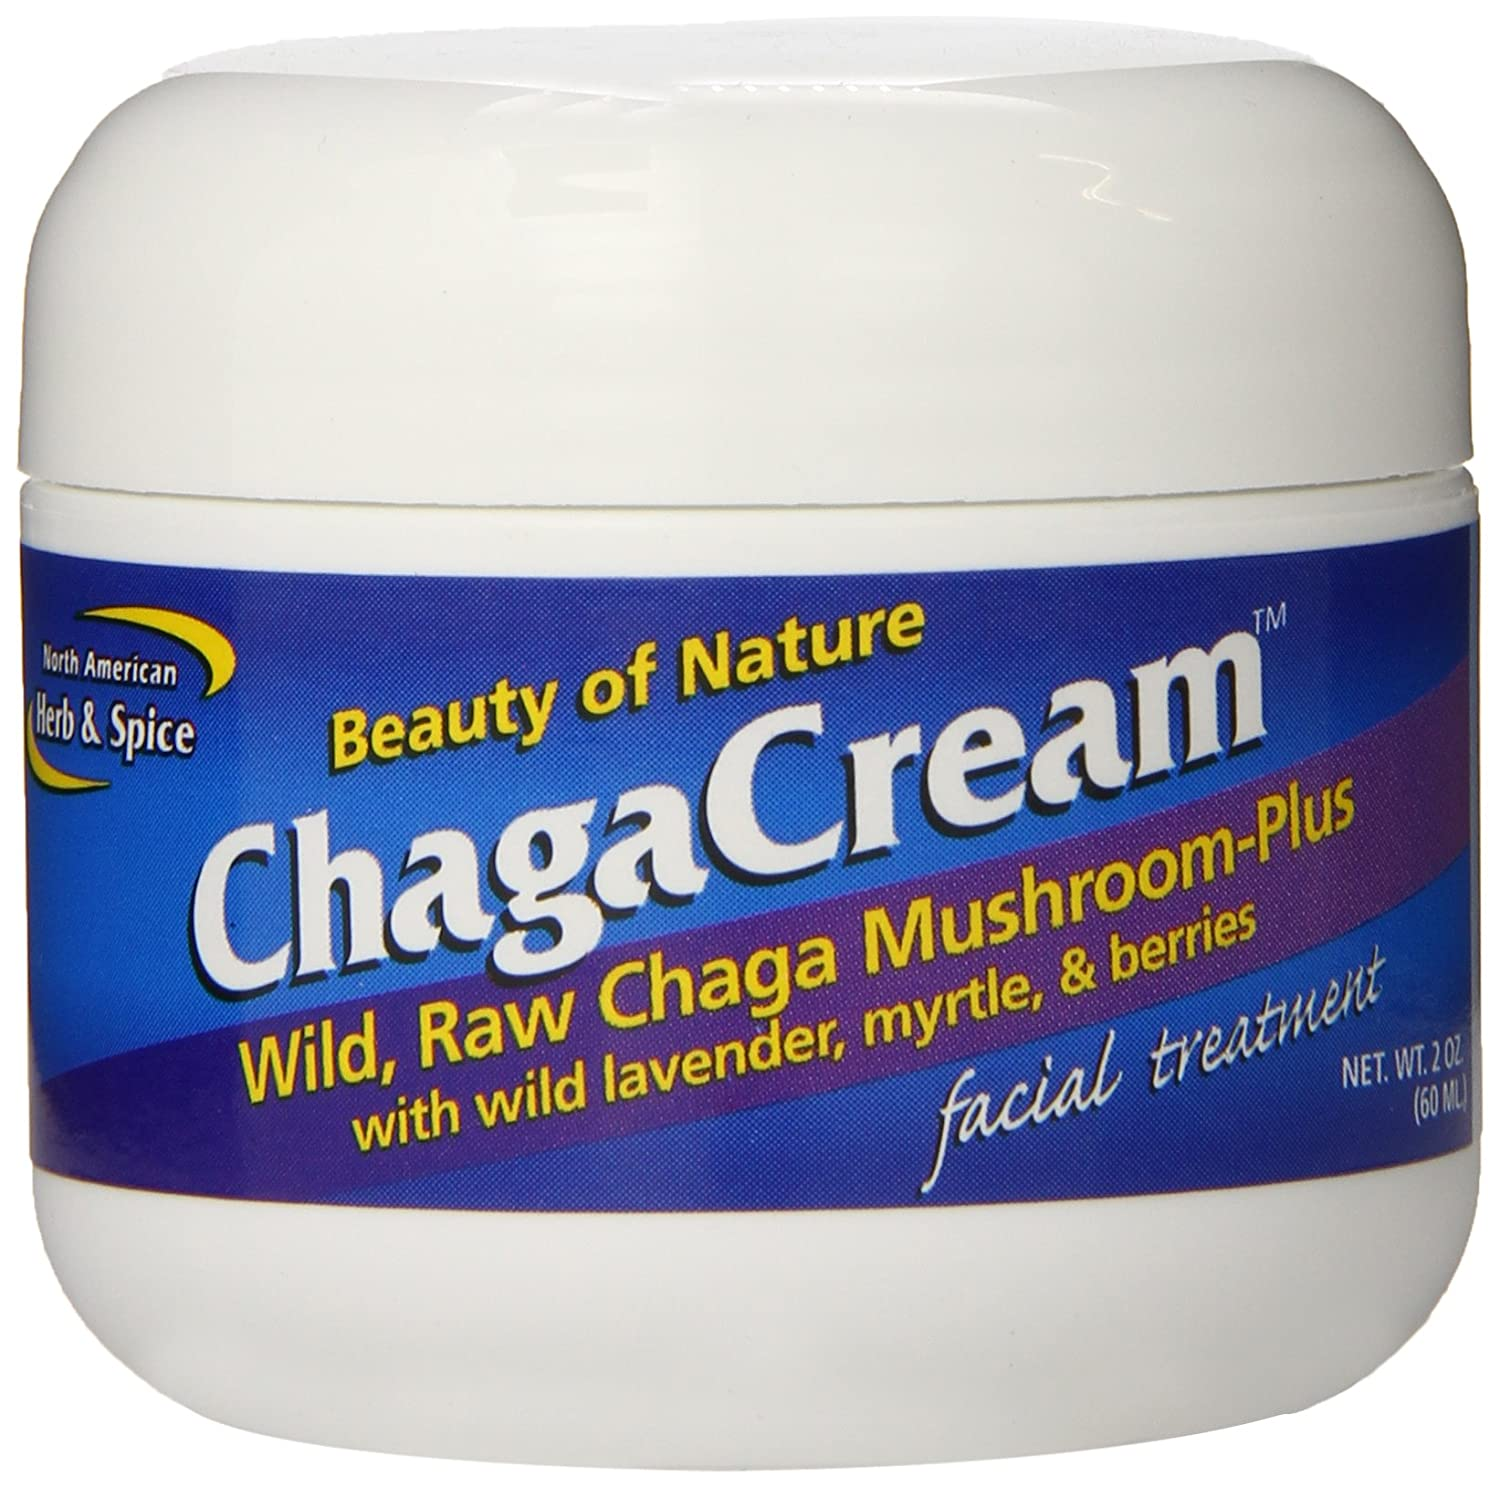 North American Herb and Spice, Chagacream Facial Treatment, 2-Ounce 635824005544